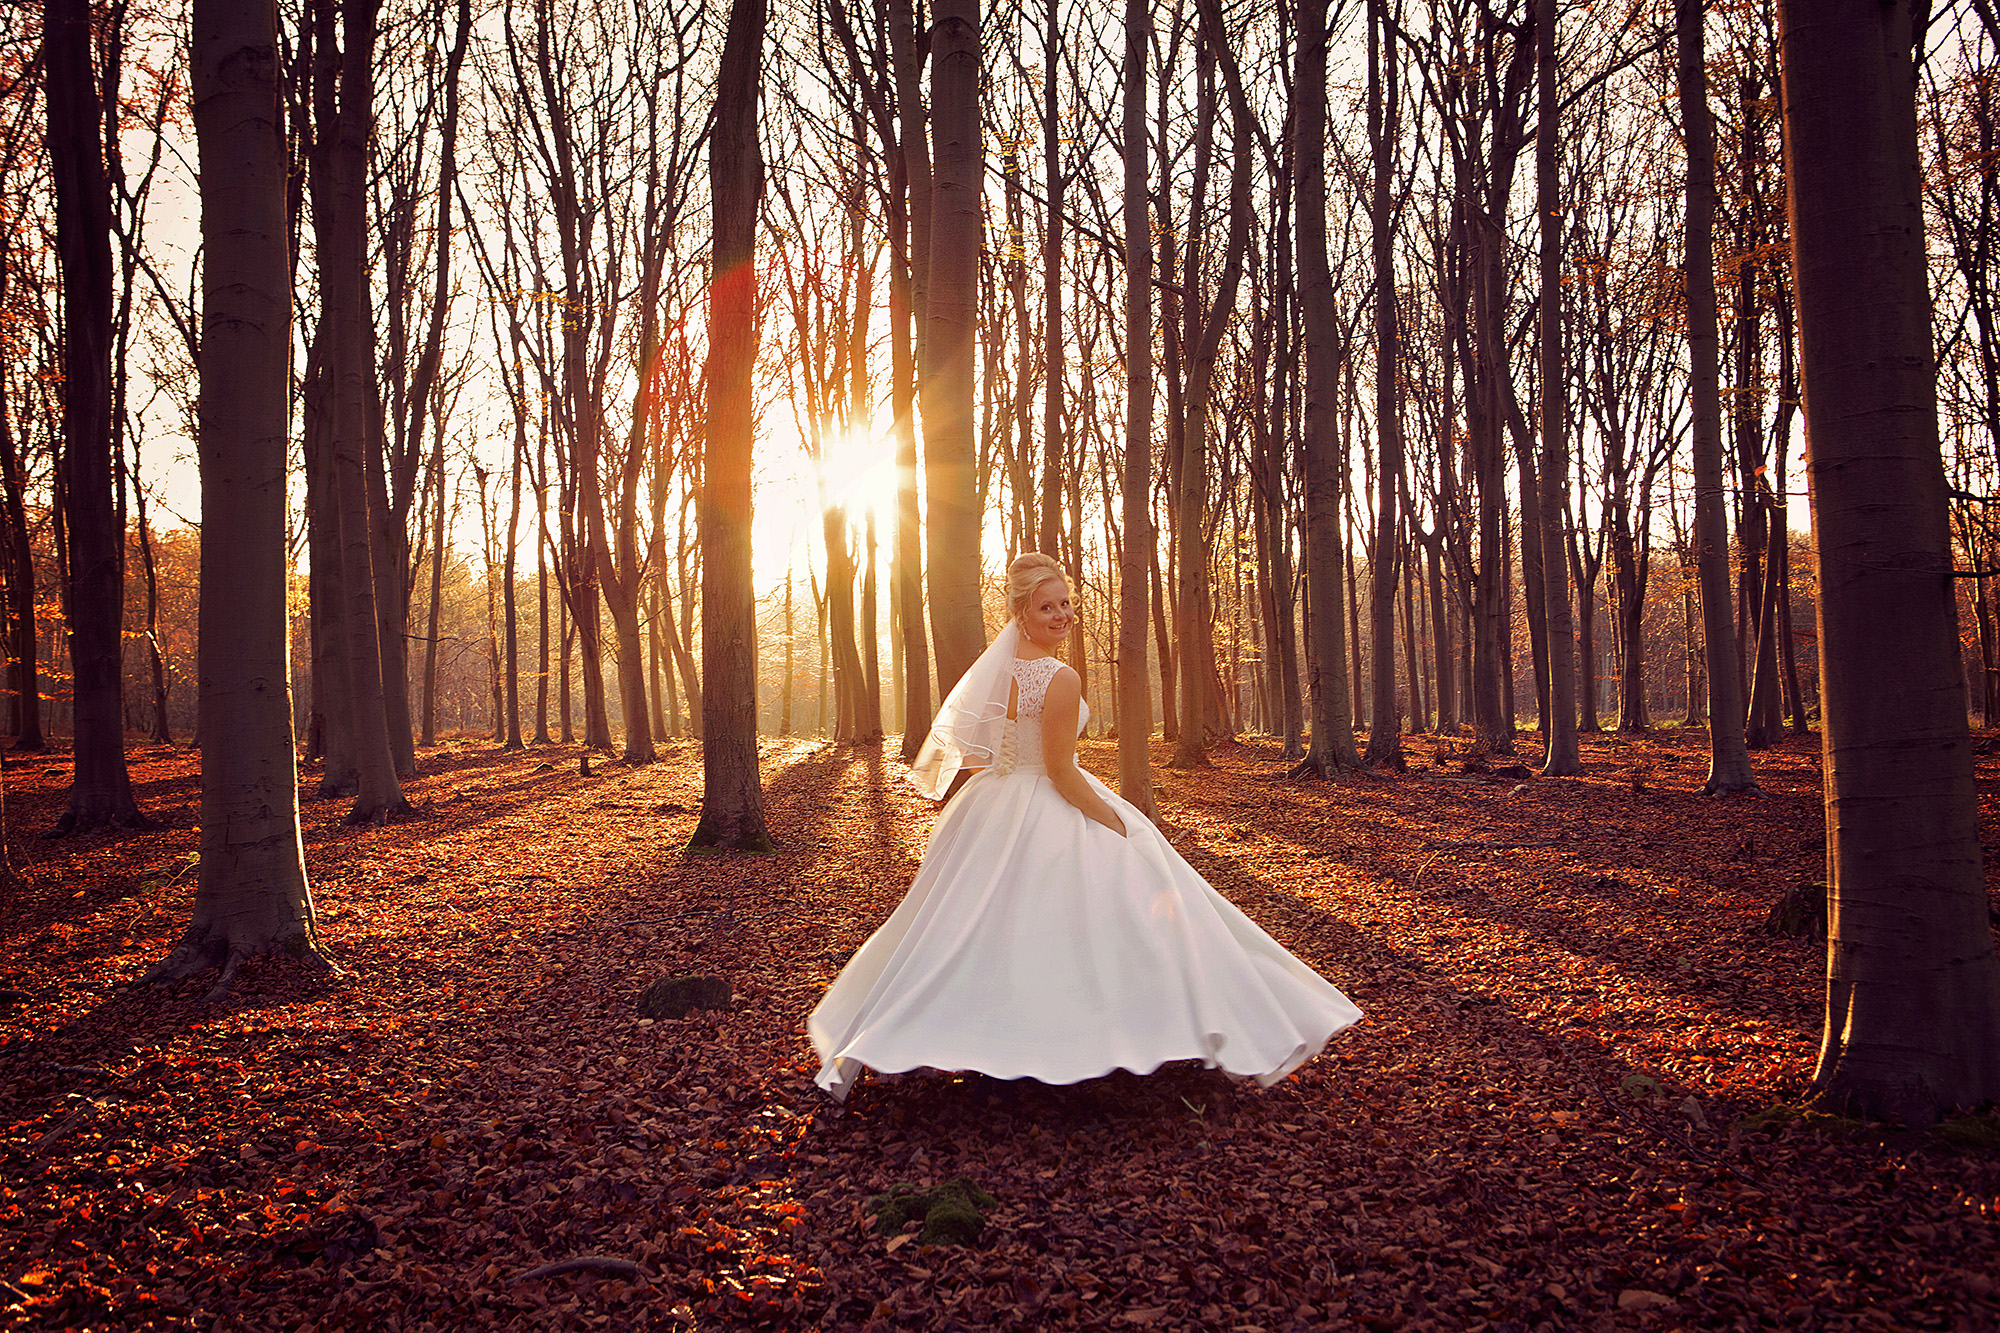 Wedding photography for joyful people who embrace life and love a laugh… - A wedding should never stress you out - it's about celebrating love, life, blessings and reminding you how spectacular you are.